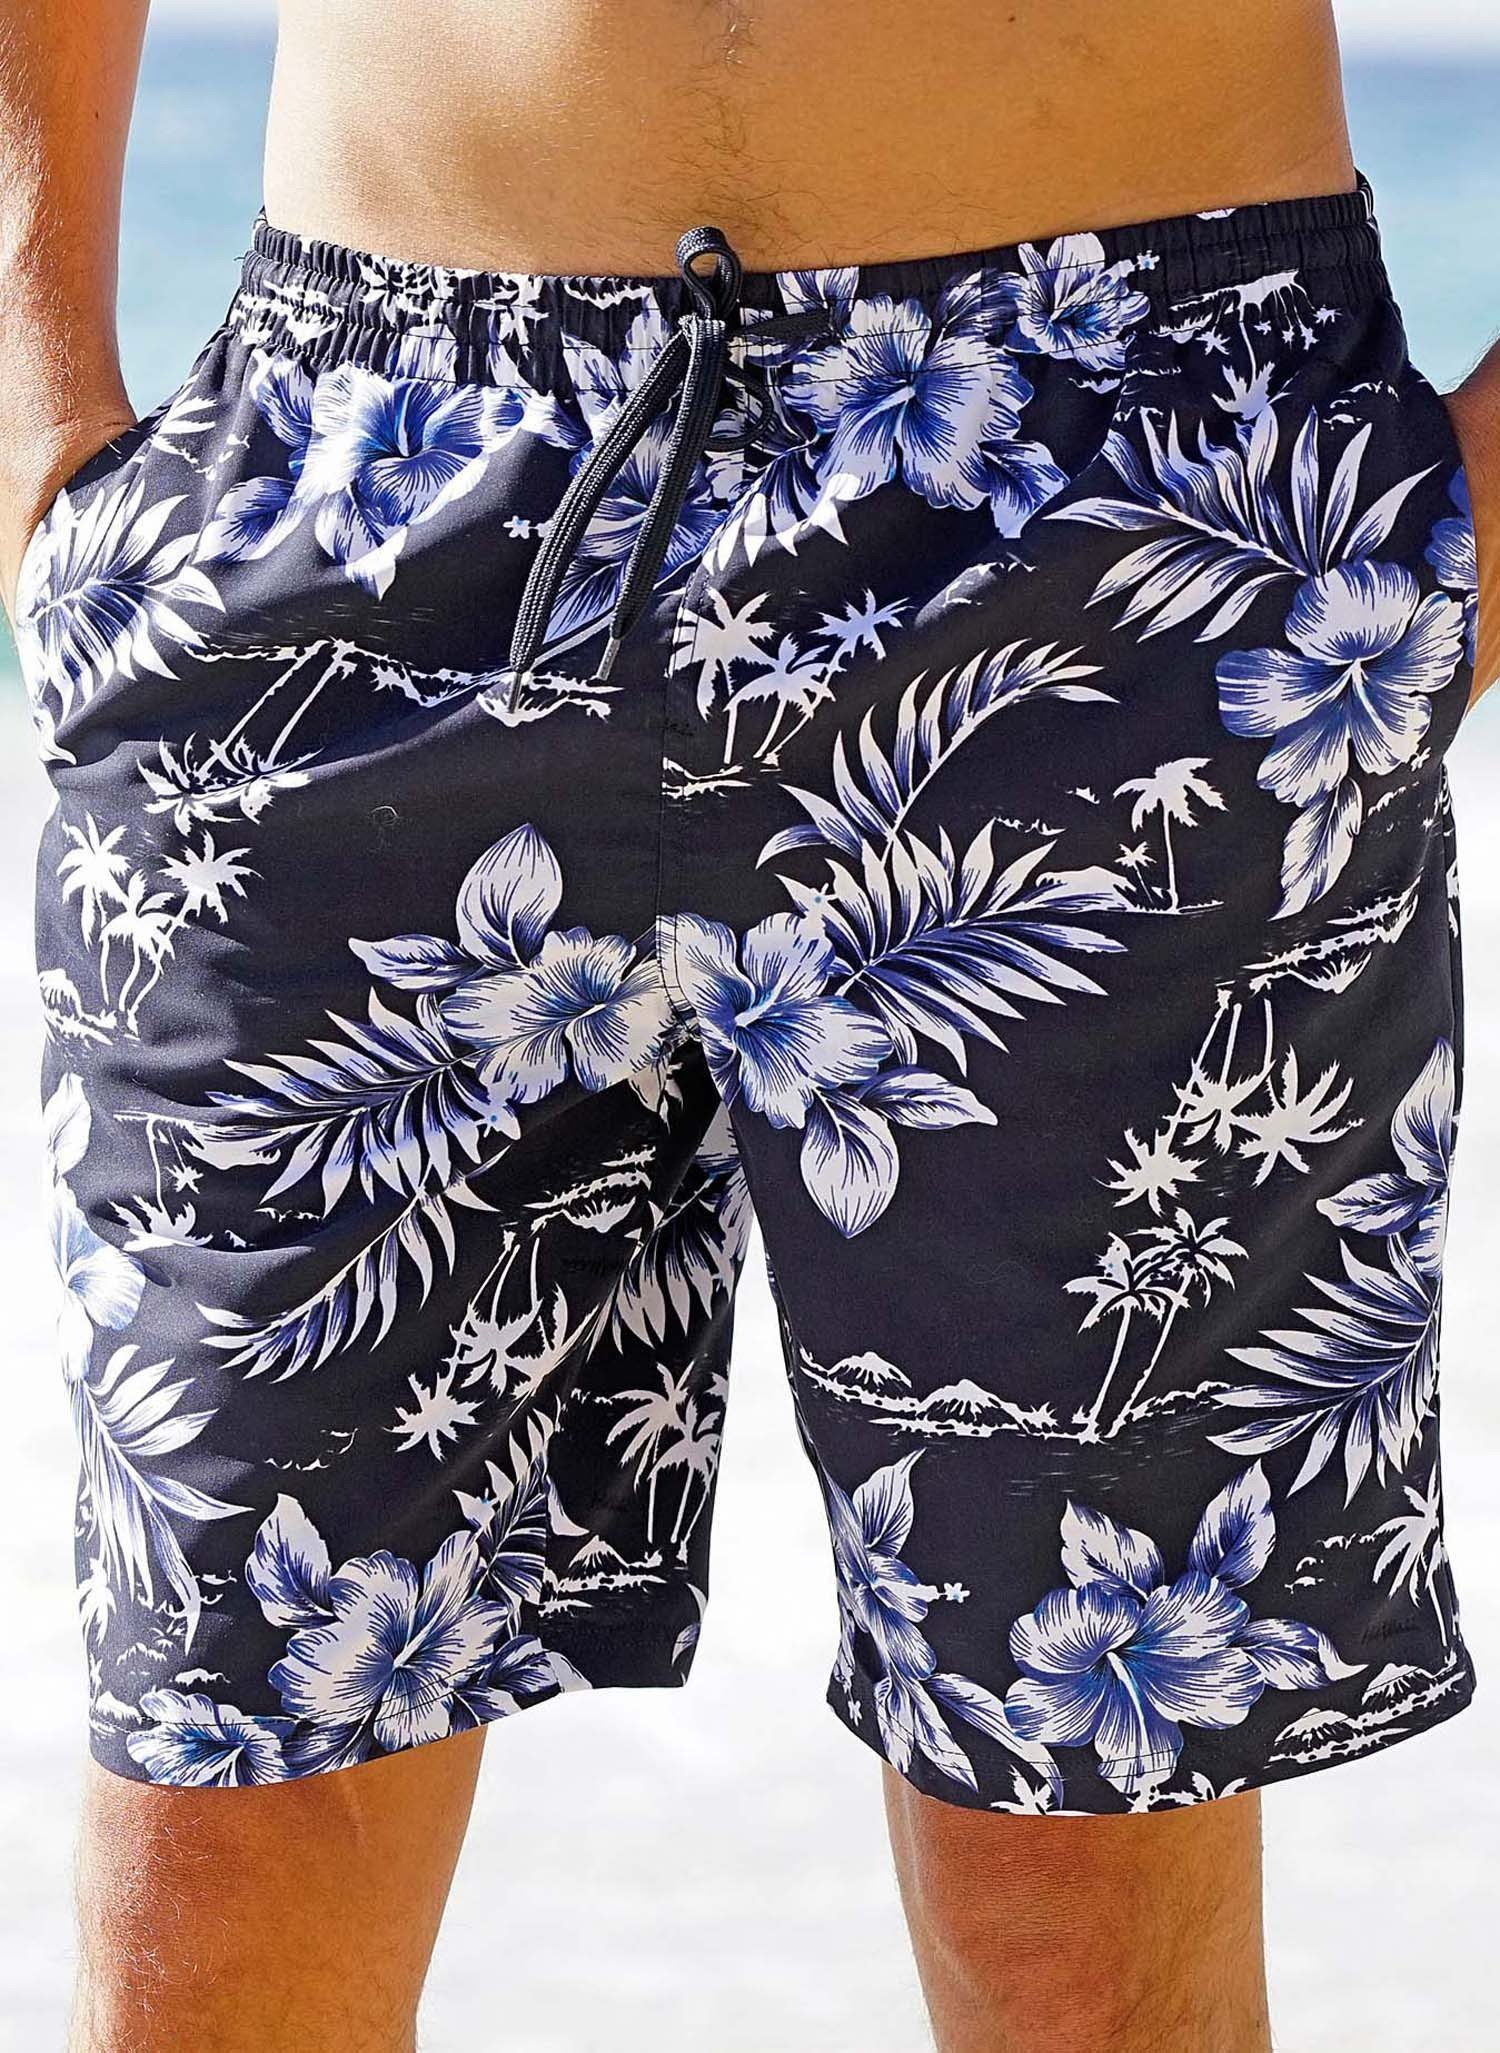 H-Bade-Shorts,HAWAII blau M 047 - 1 - Ronja.ch